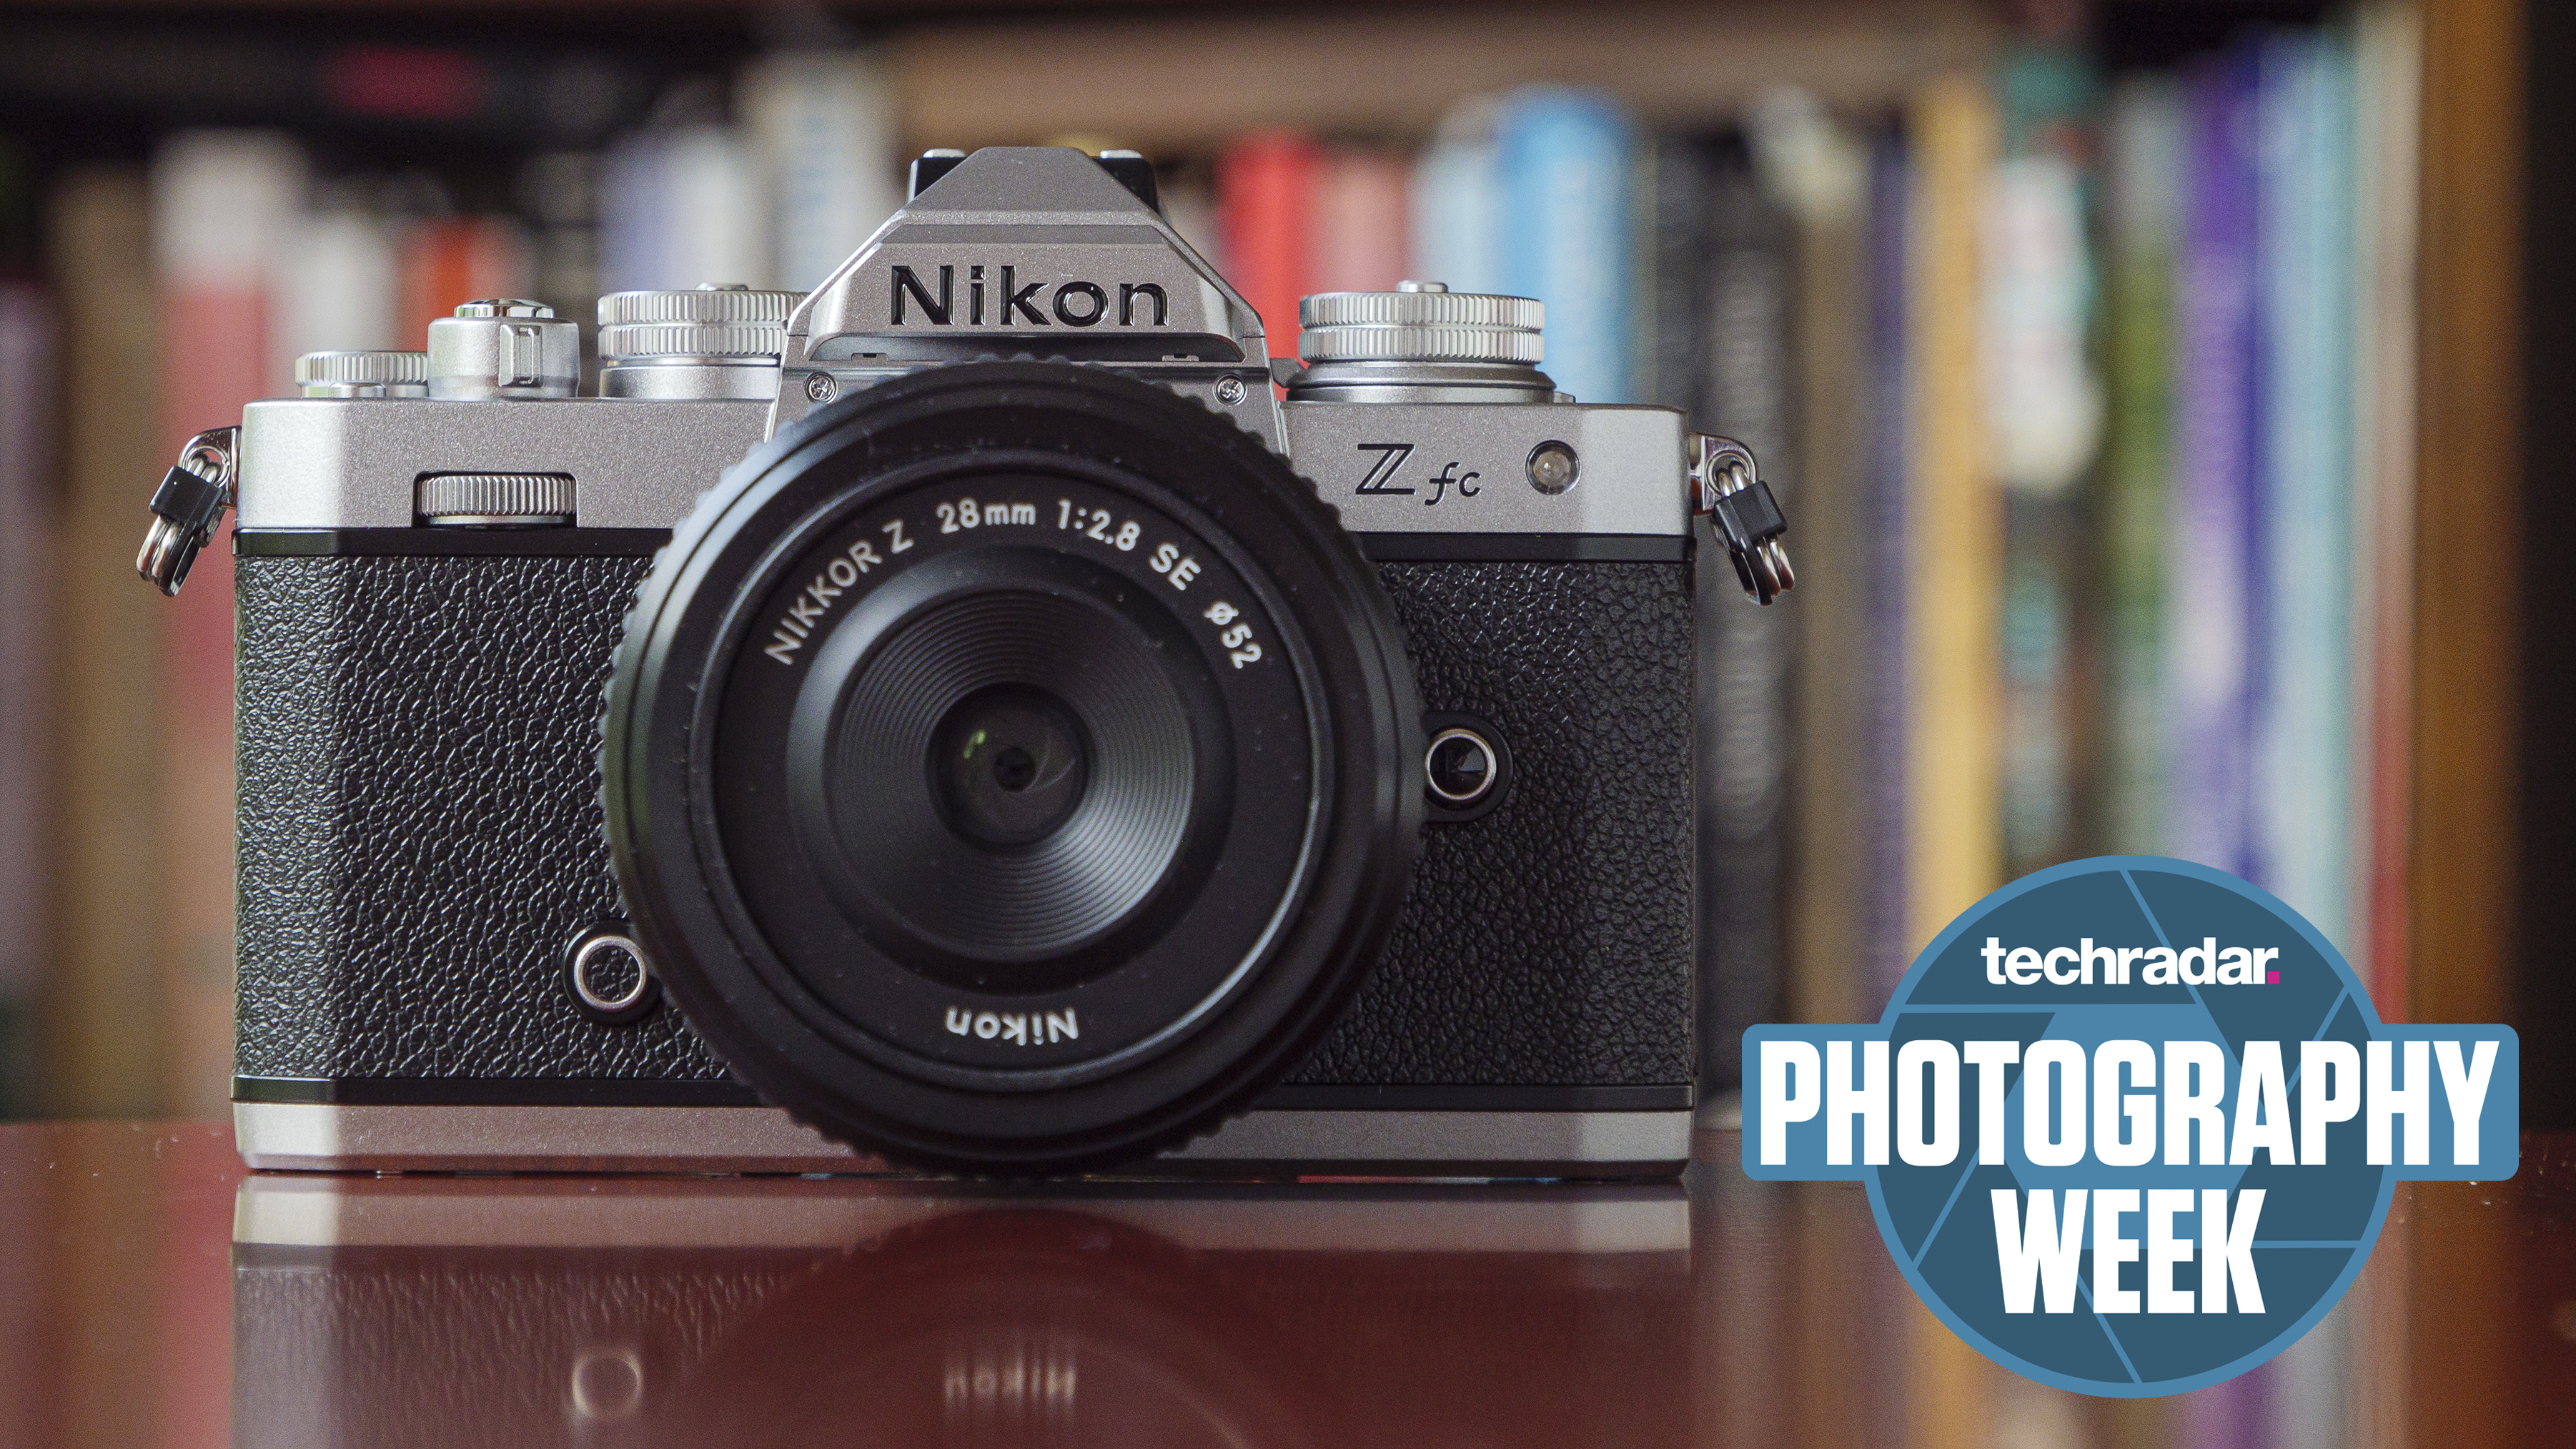 The Nikon Zfc mirrorless camera on a table in front of a bookcase